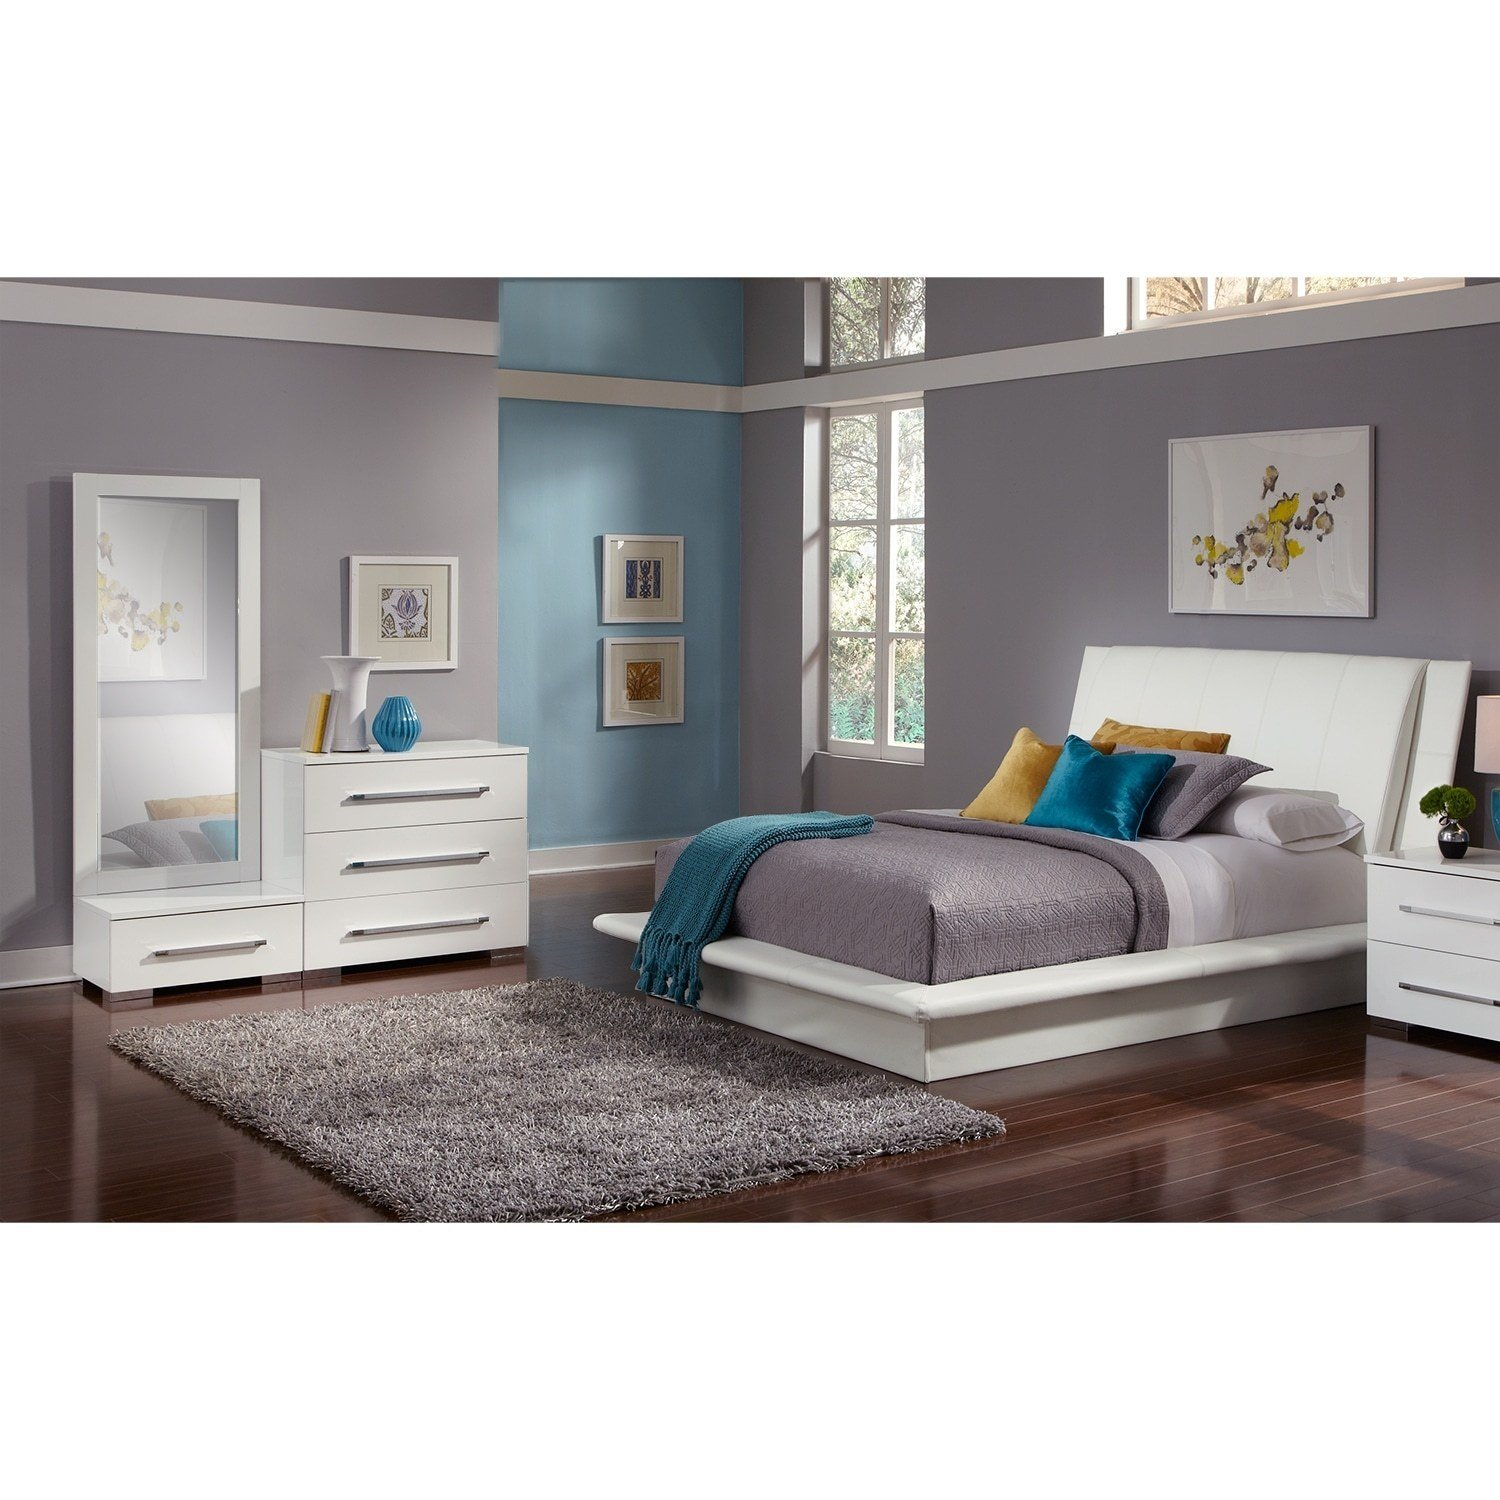 Best Dimora 5 Piece Queen Upholstered Bedroom Set White With Pictures